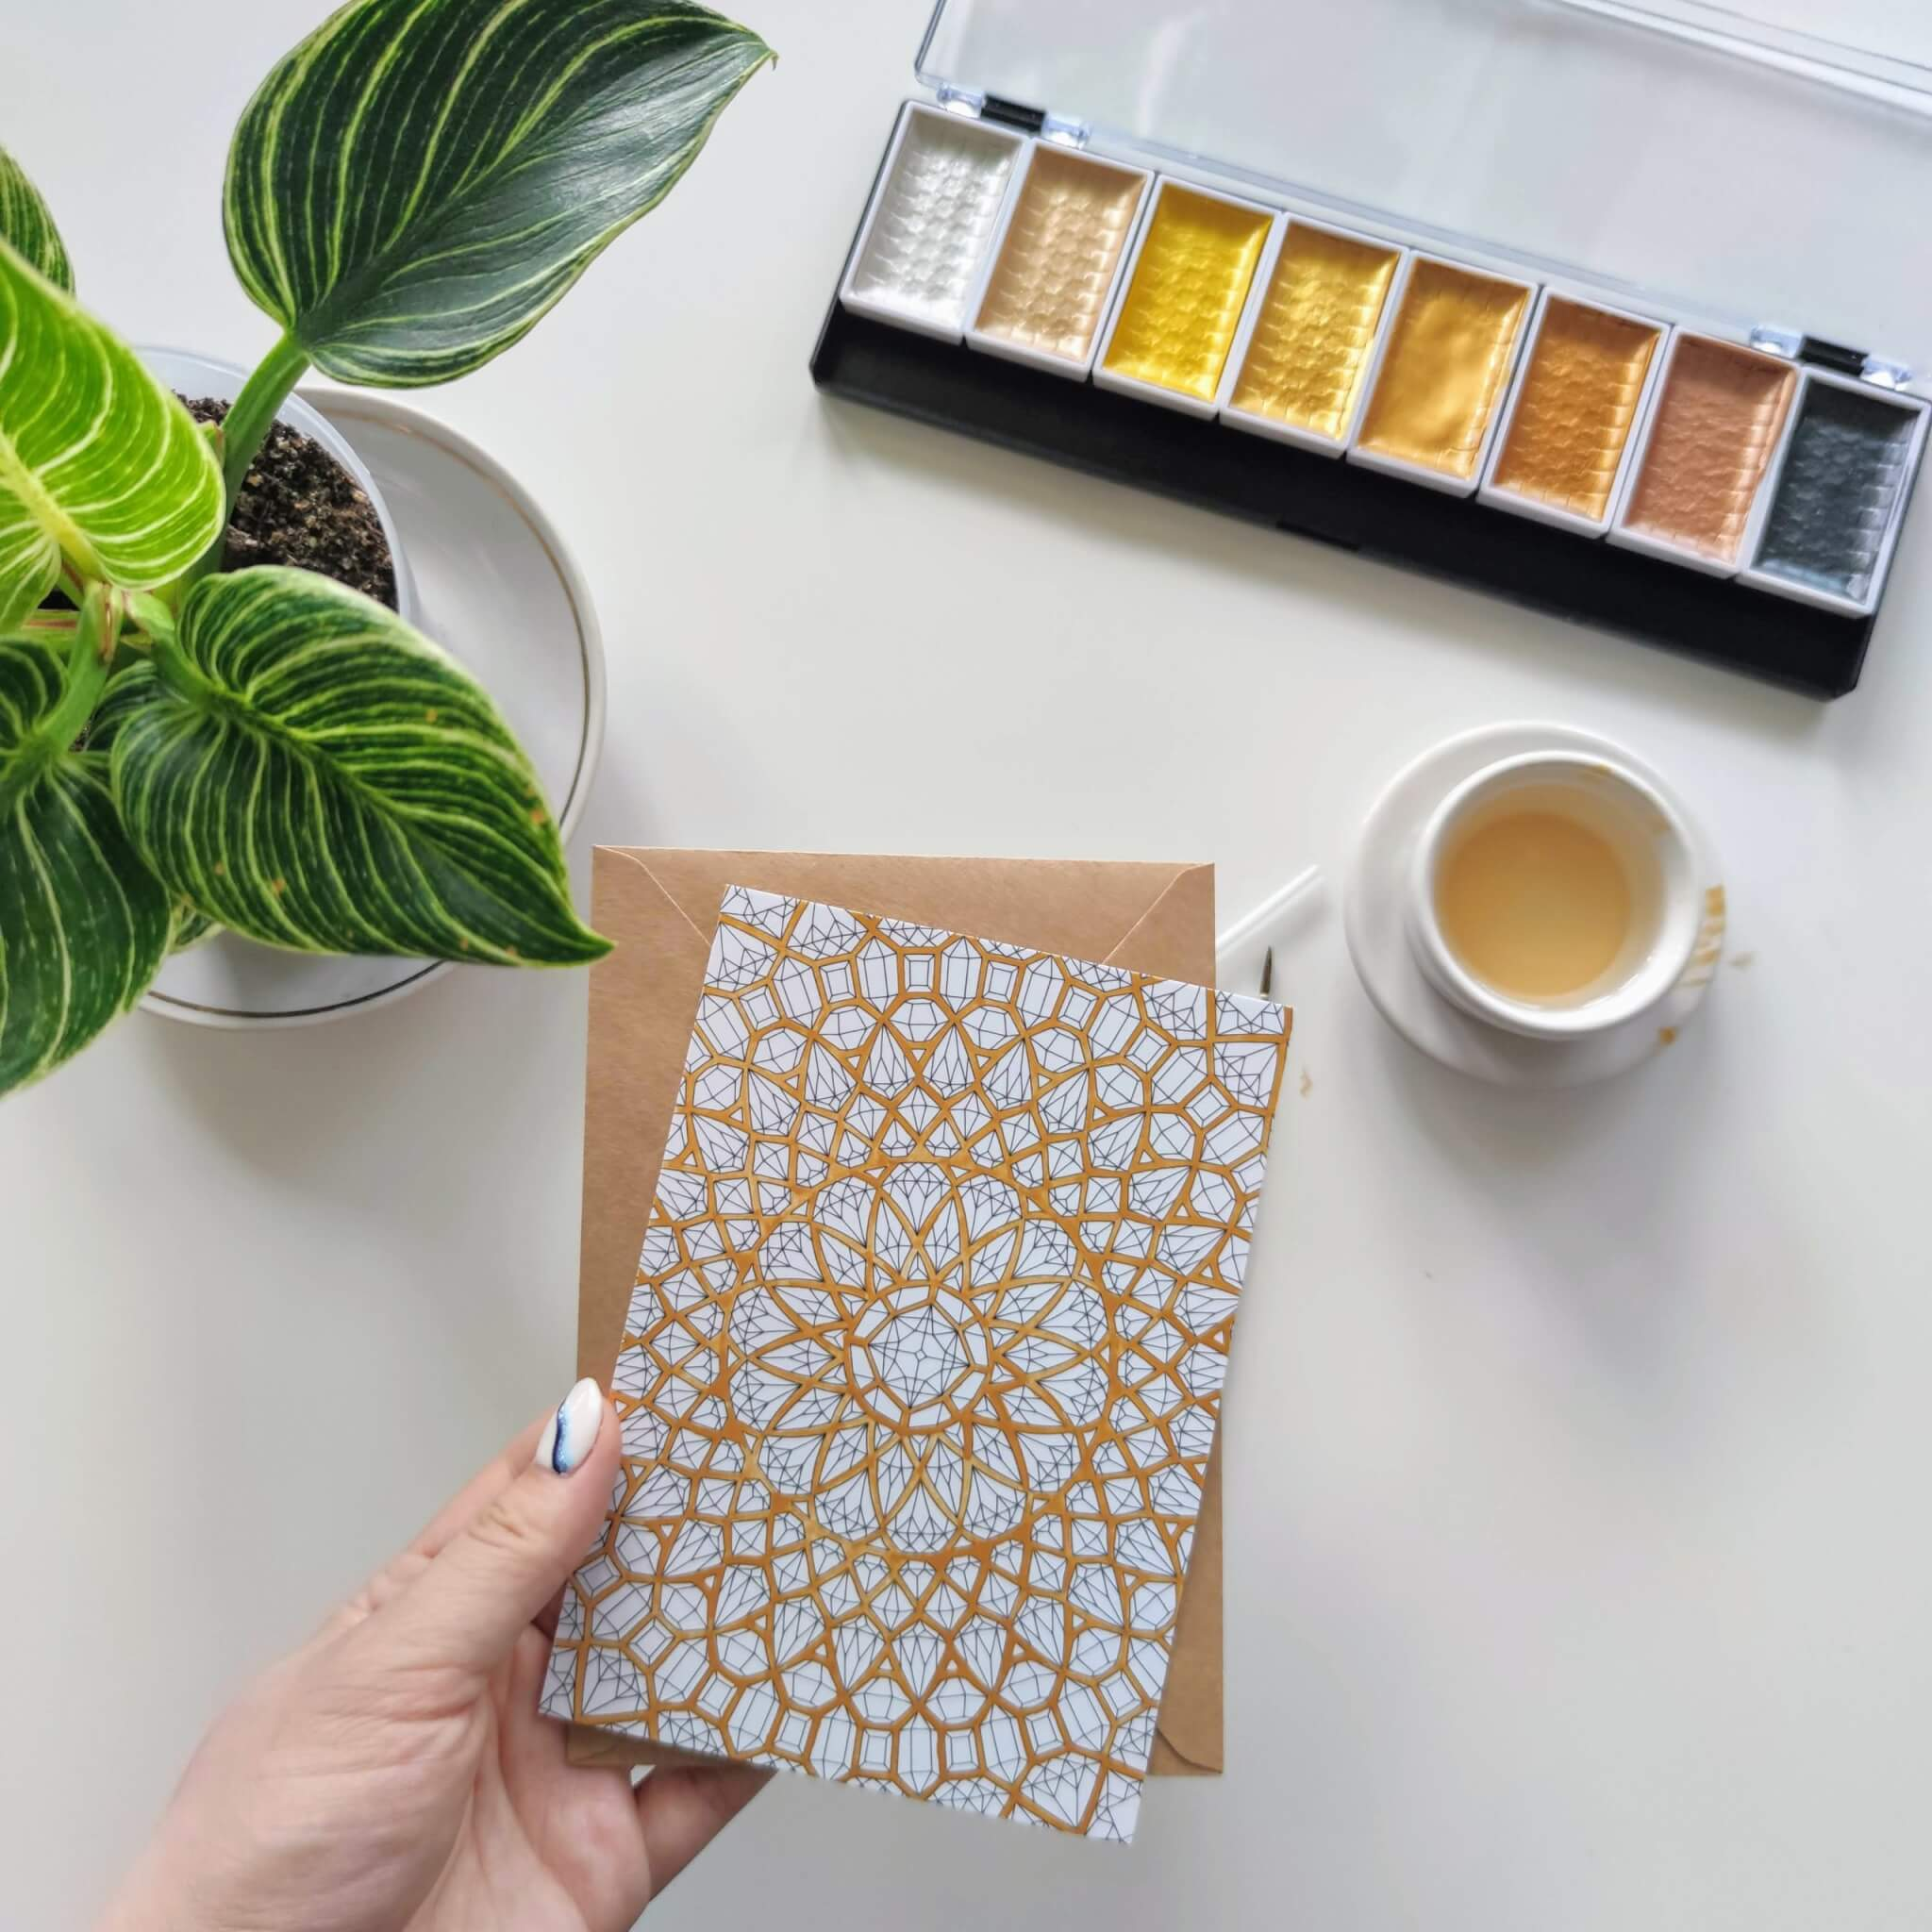 adding sparkle to adult coloring with gold paint background